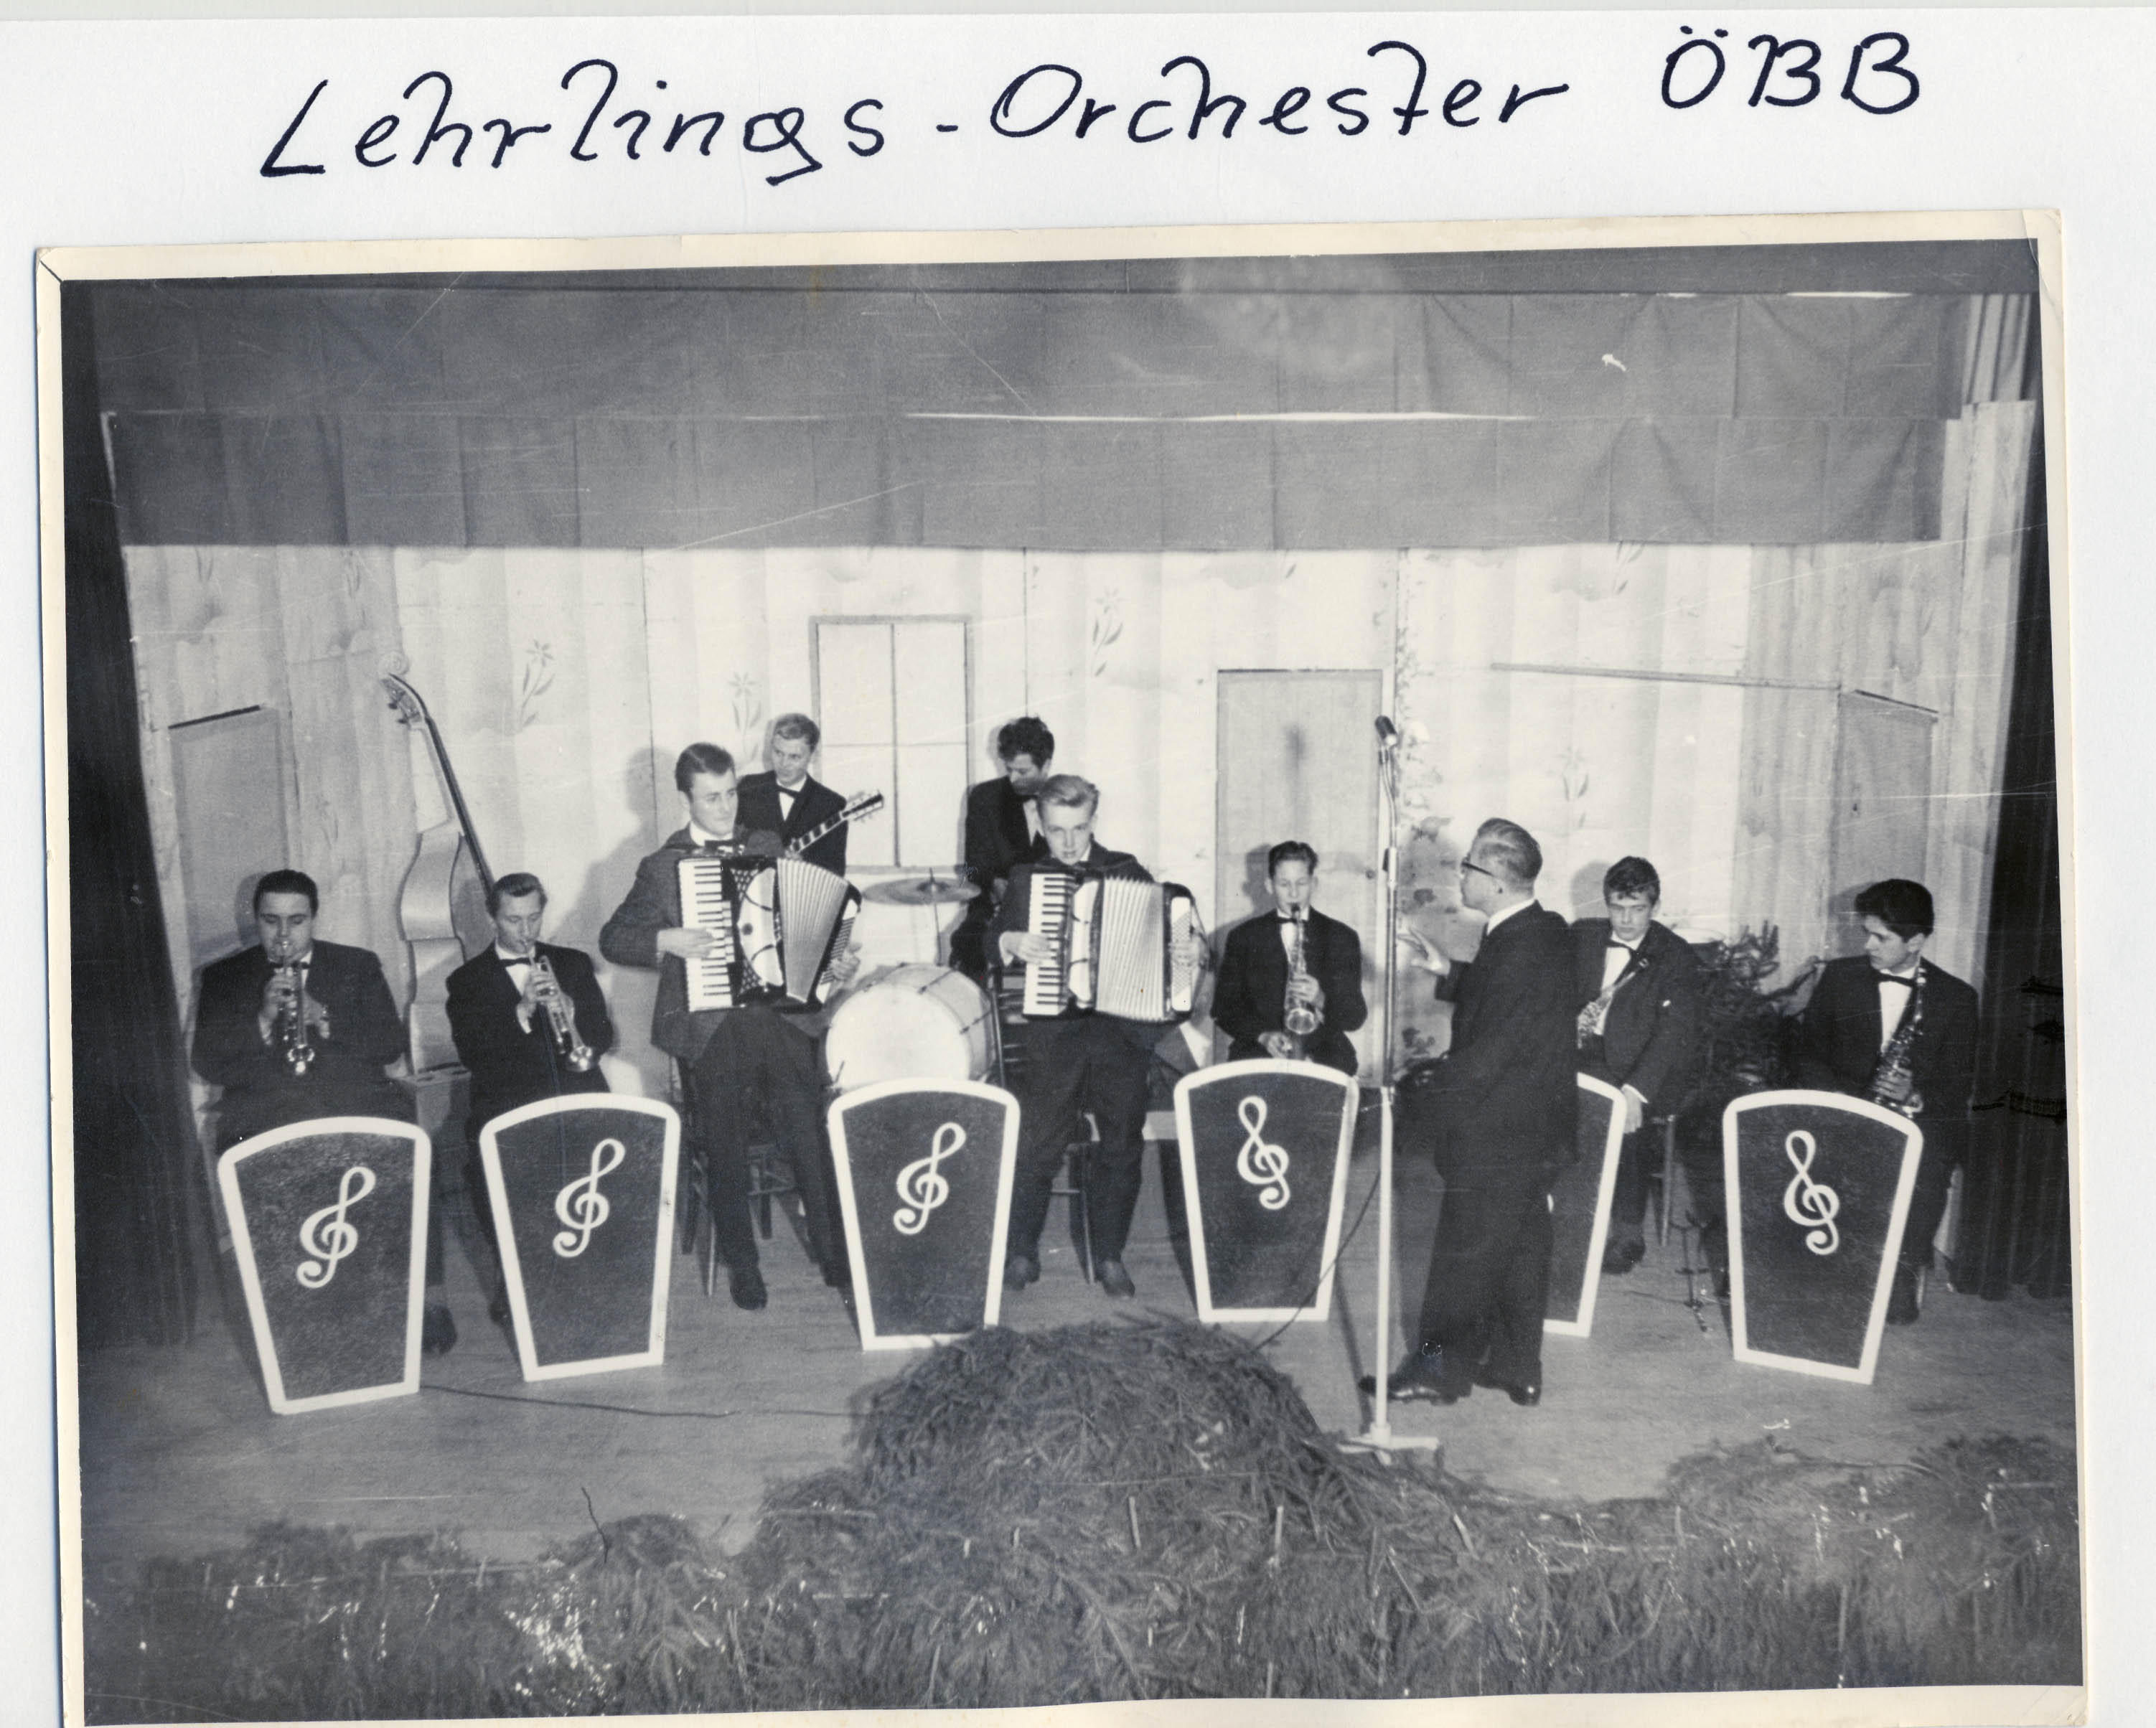 Lehrlings- Orchester 2